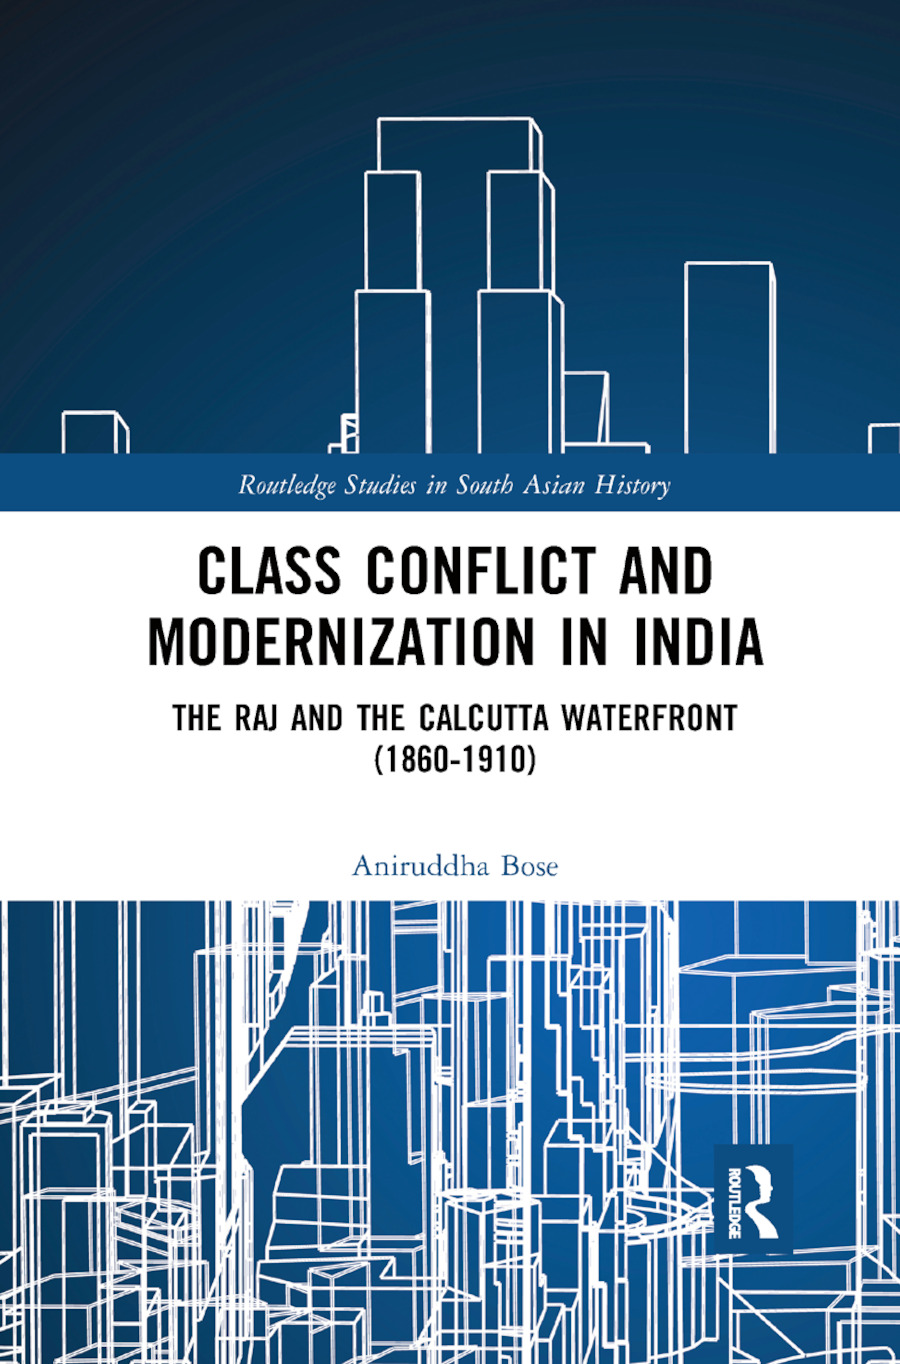 Class Conflict and Modernization in India: The Raj and the Calcutta Waterfront (1860-1910) book cover